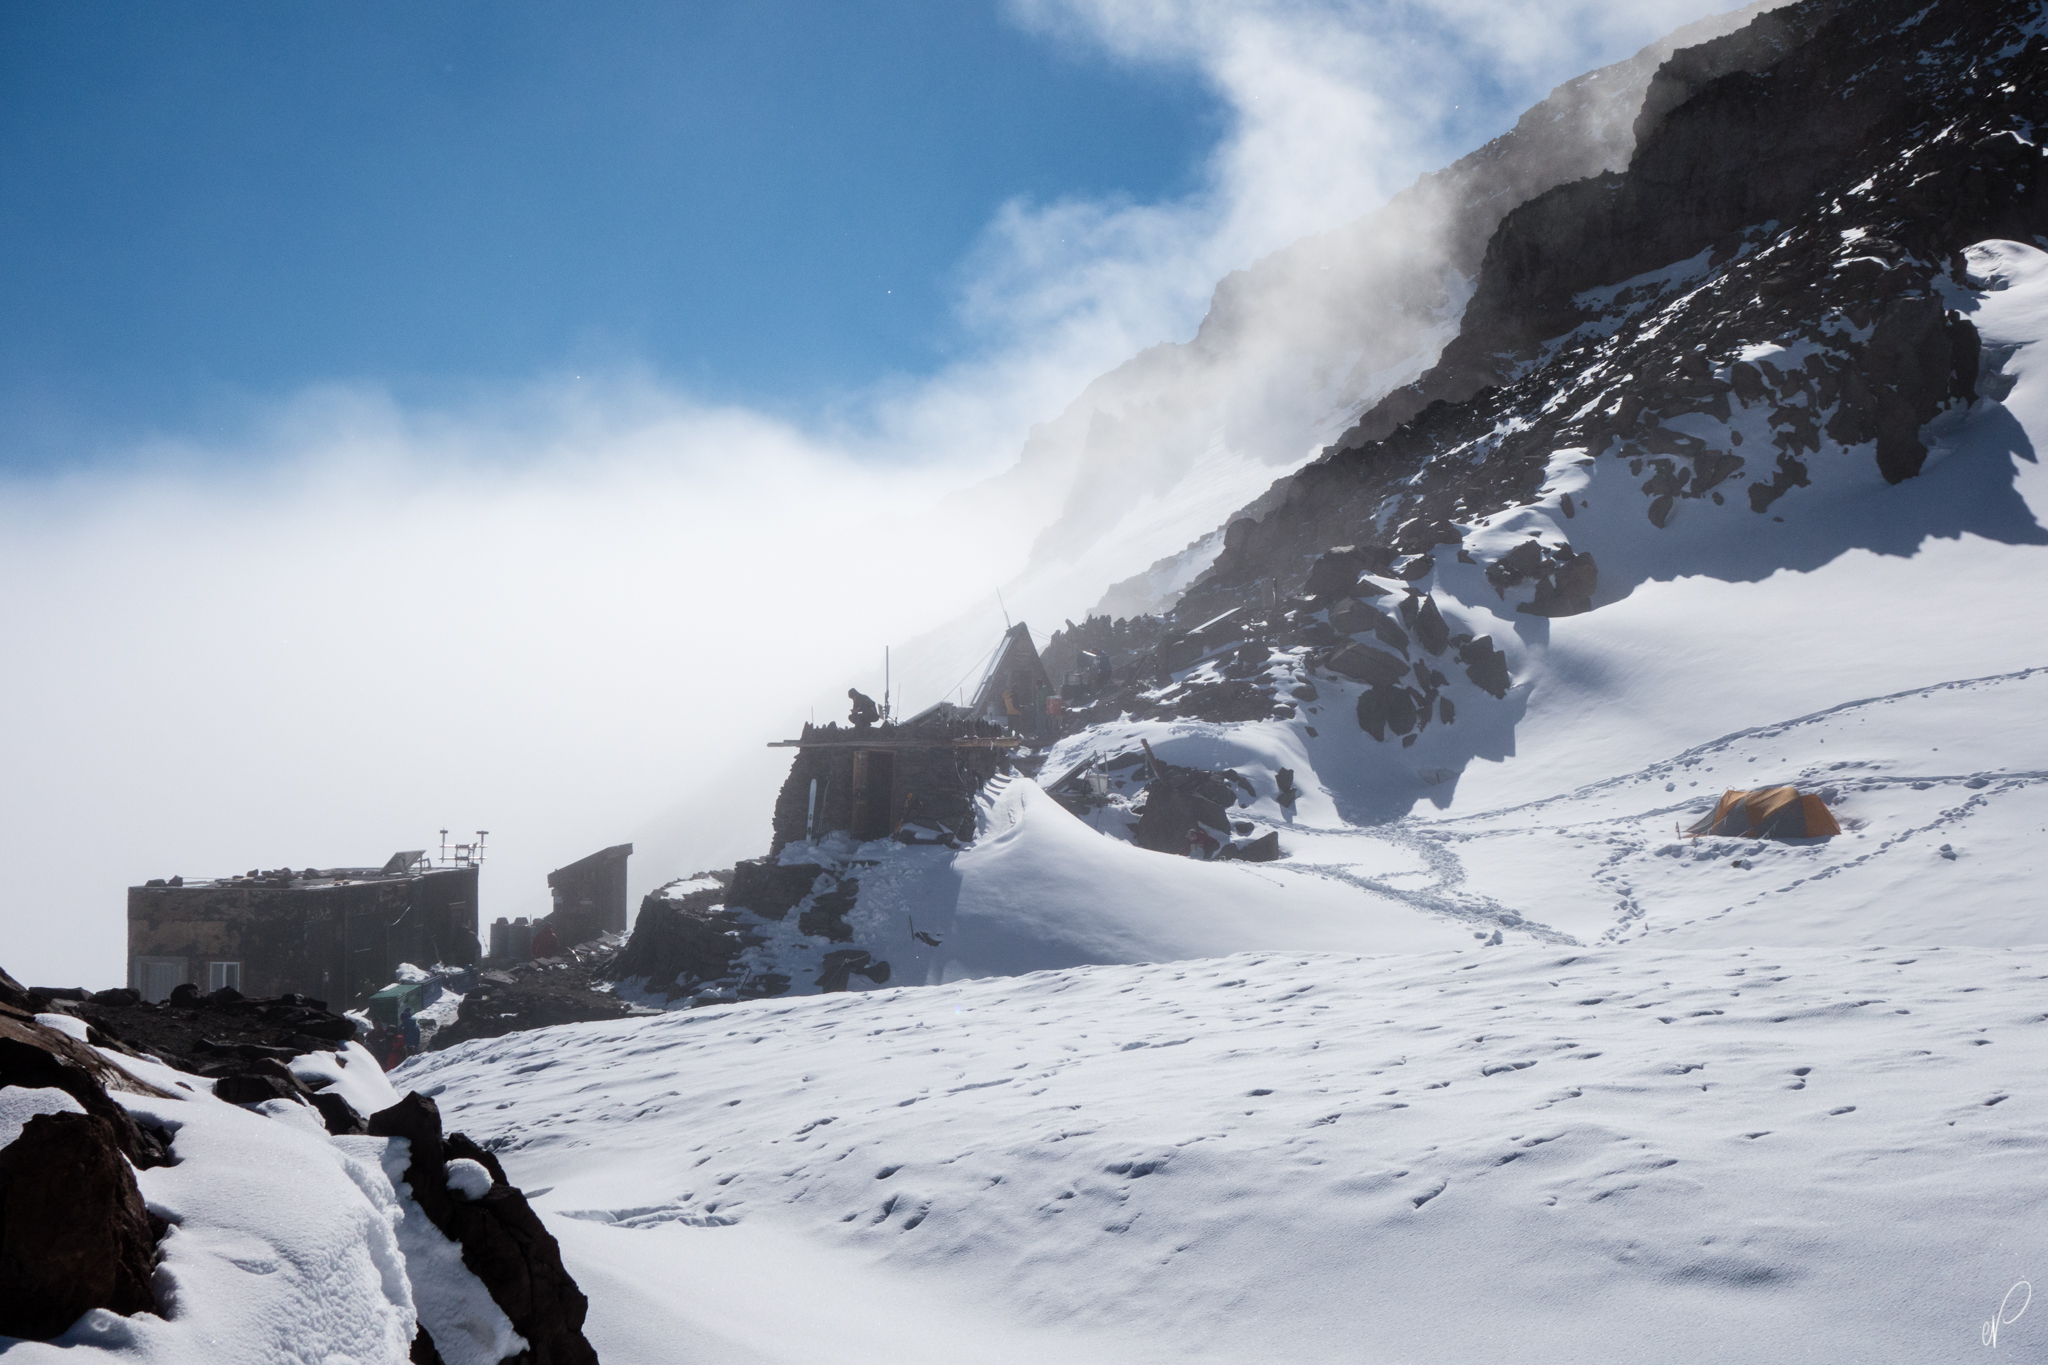 Camp Muir barely over the clouds. the building on the far left is the bunkhouse for guided trips. The crouched man is over the climbing ranger hut. The pyramid structure in the middle is the hut for guides, fitted with solar panels to power the huts.